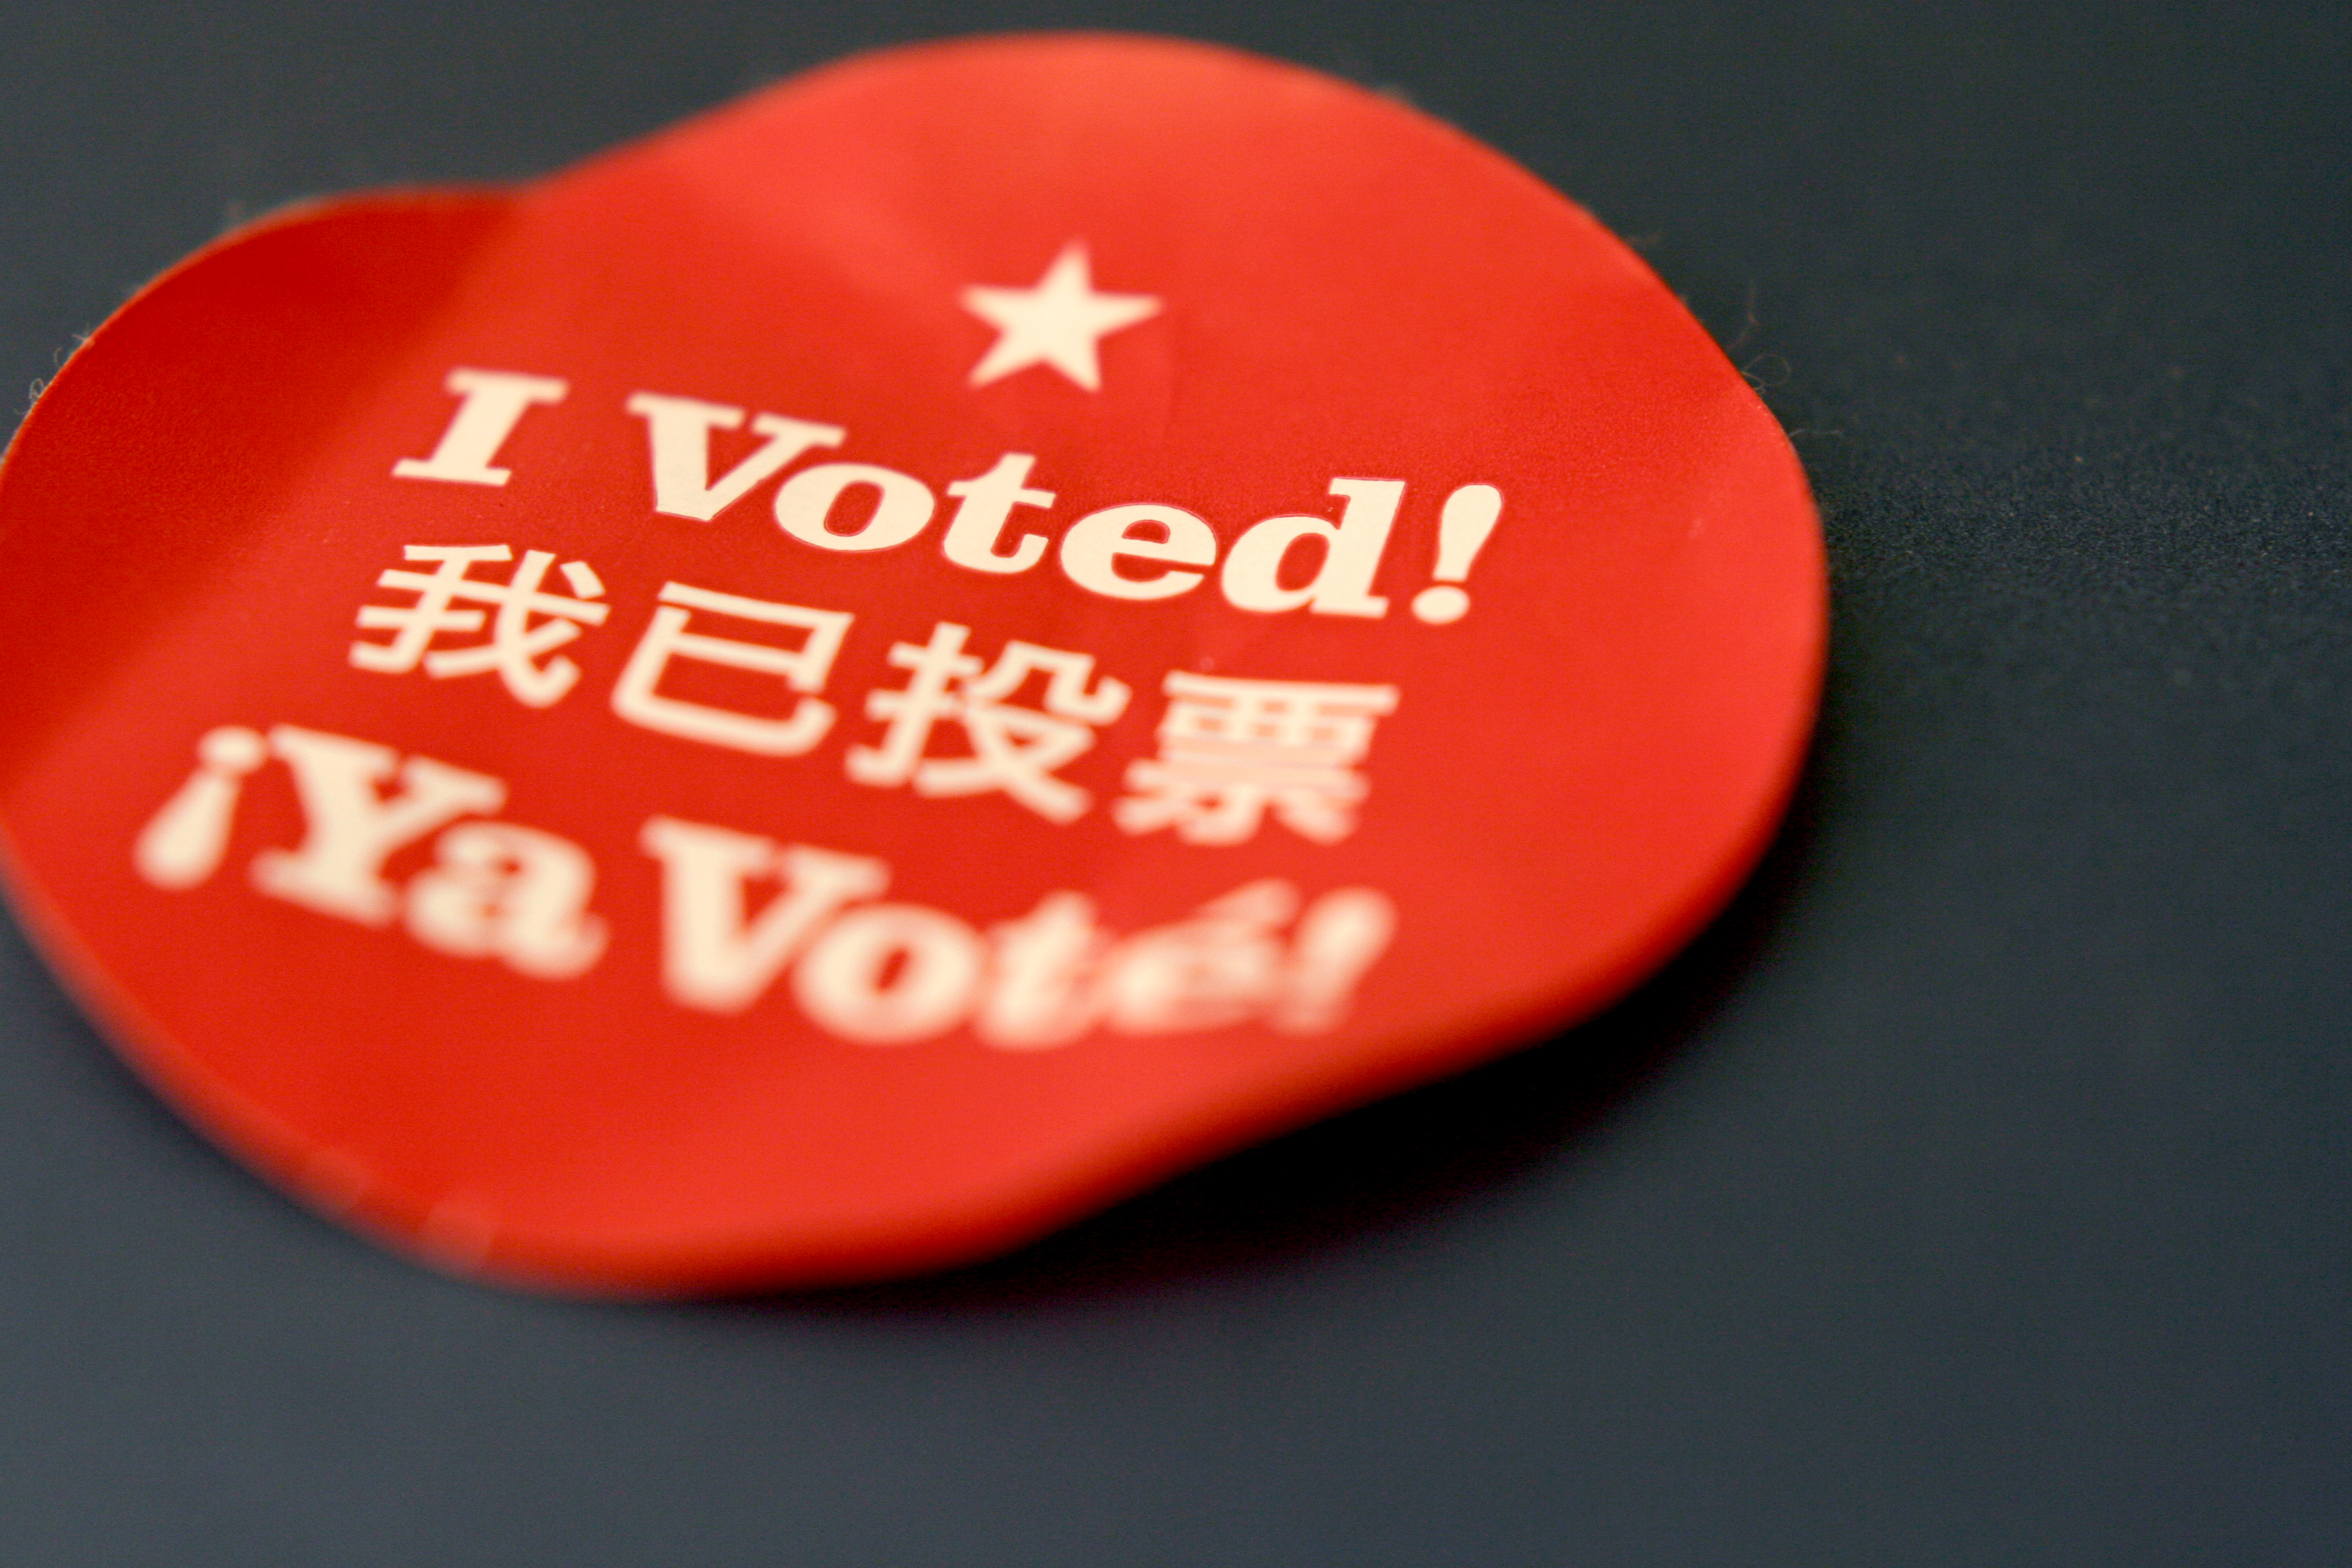 I voted sticker election